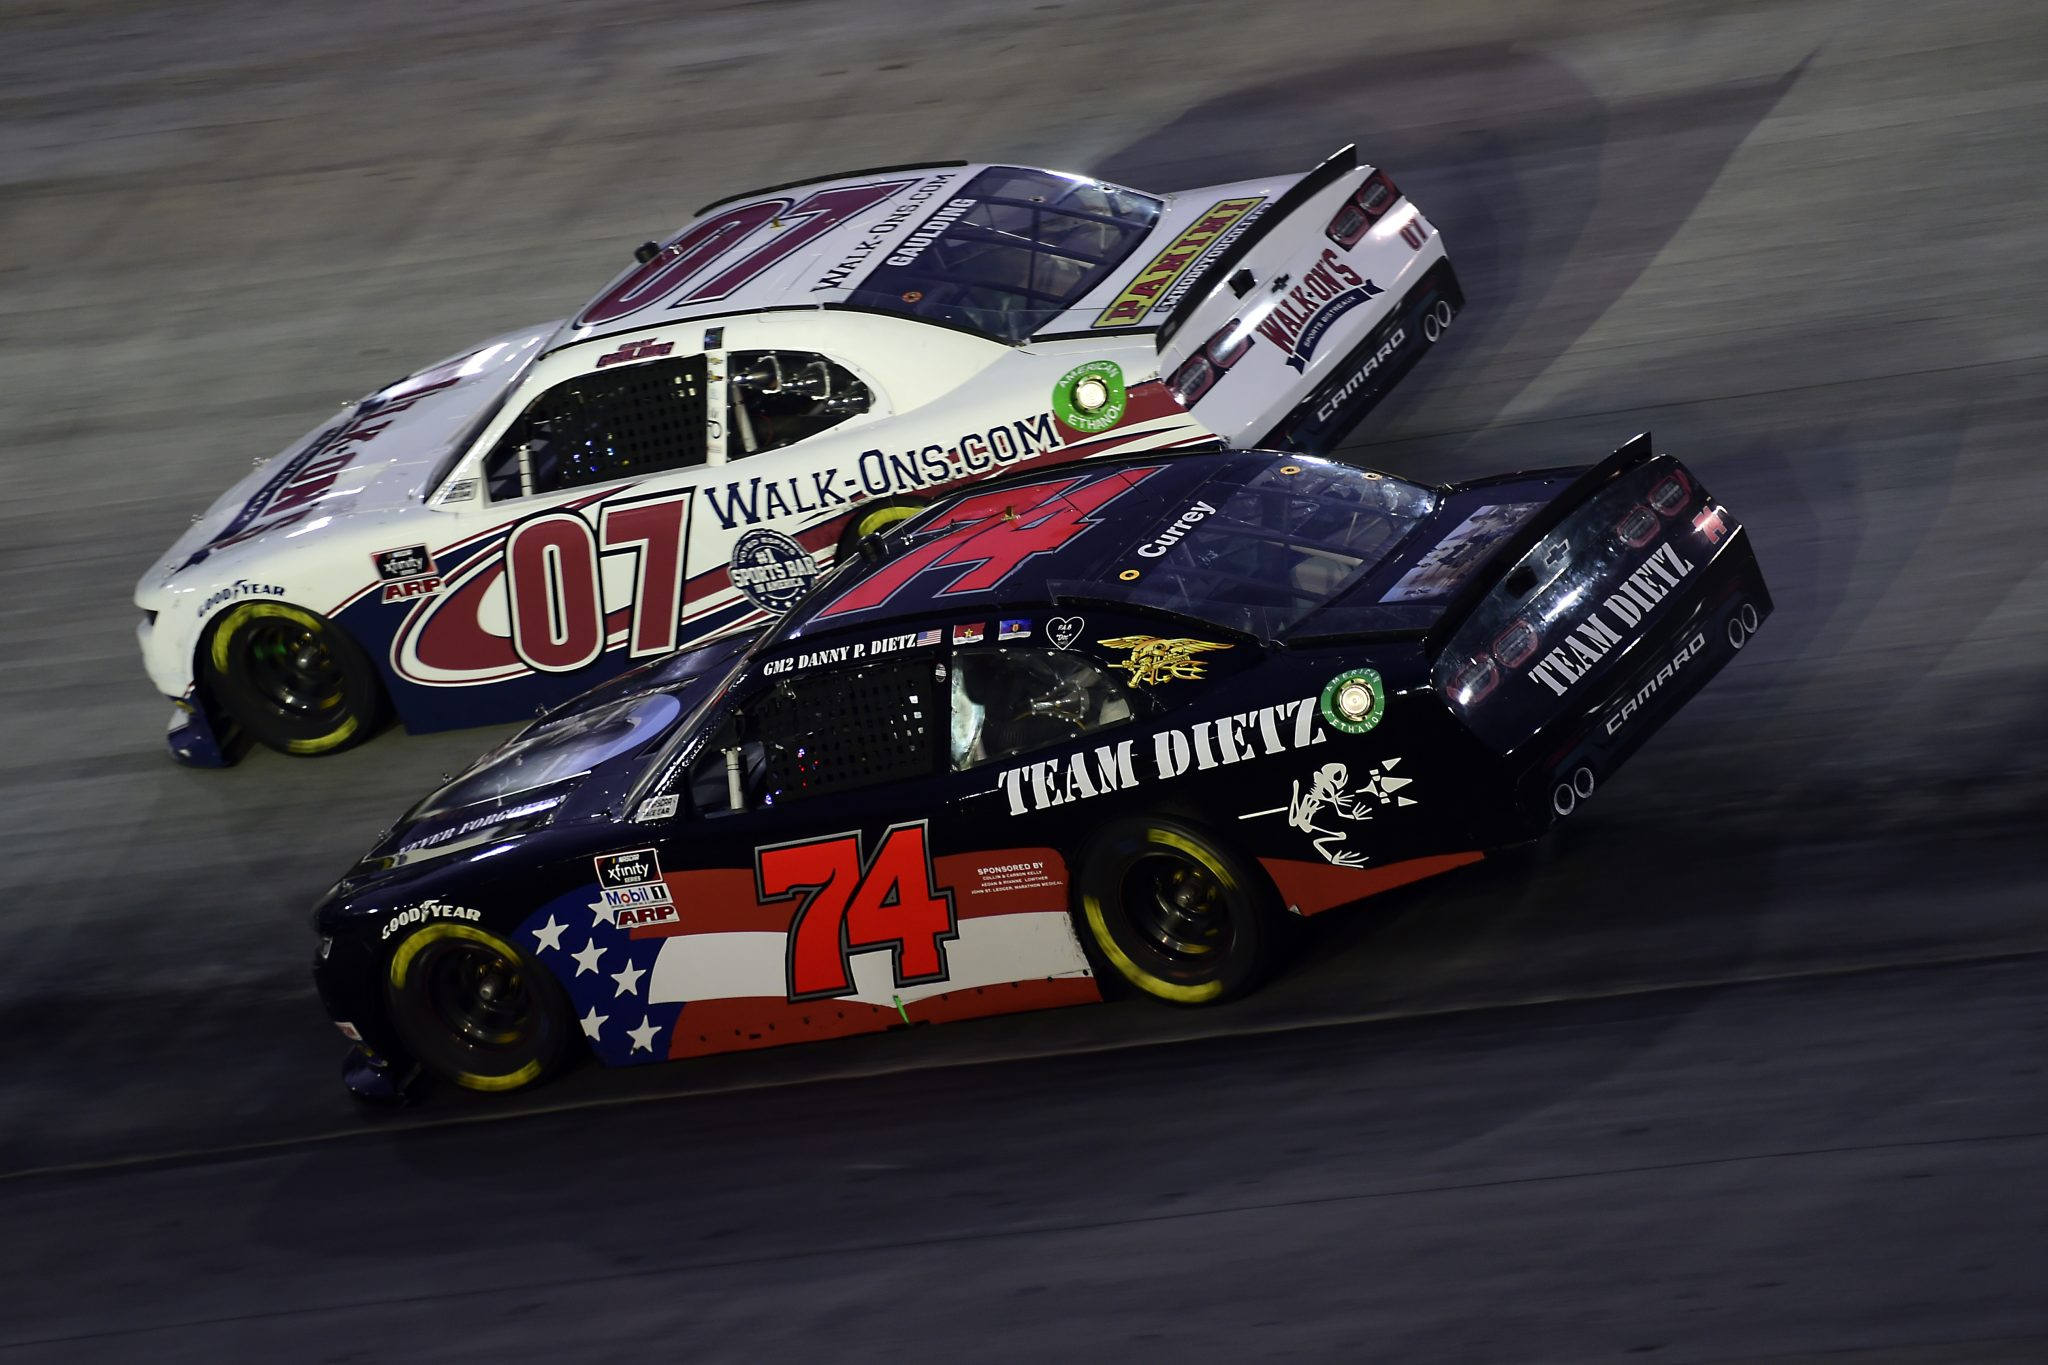 BRISTOL, TENNESSEE - SEPTEMBER 18: Bayley Currey, driver of the #74 Team Dietz Chevrolet, and Gray Gaulding, driver of the #07 WALK-ON'S Chevrolet, race during the NASCAR Xfinity Series Food City 300 at Bristol Motor Speedway on September 18, 2020 in Bristol, Tennessee. (Photo by Jared C. Tilton/Getty Images) | Getty Images